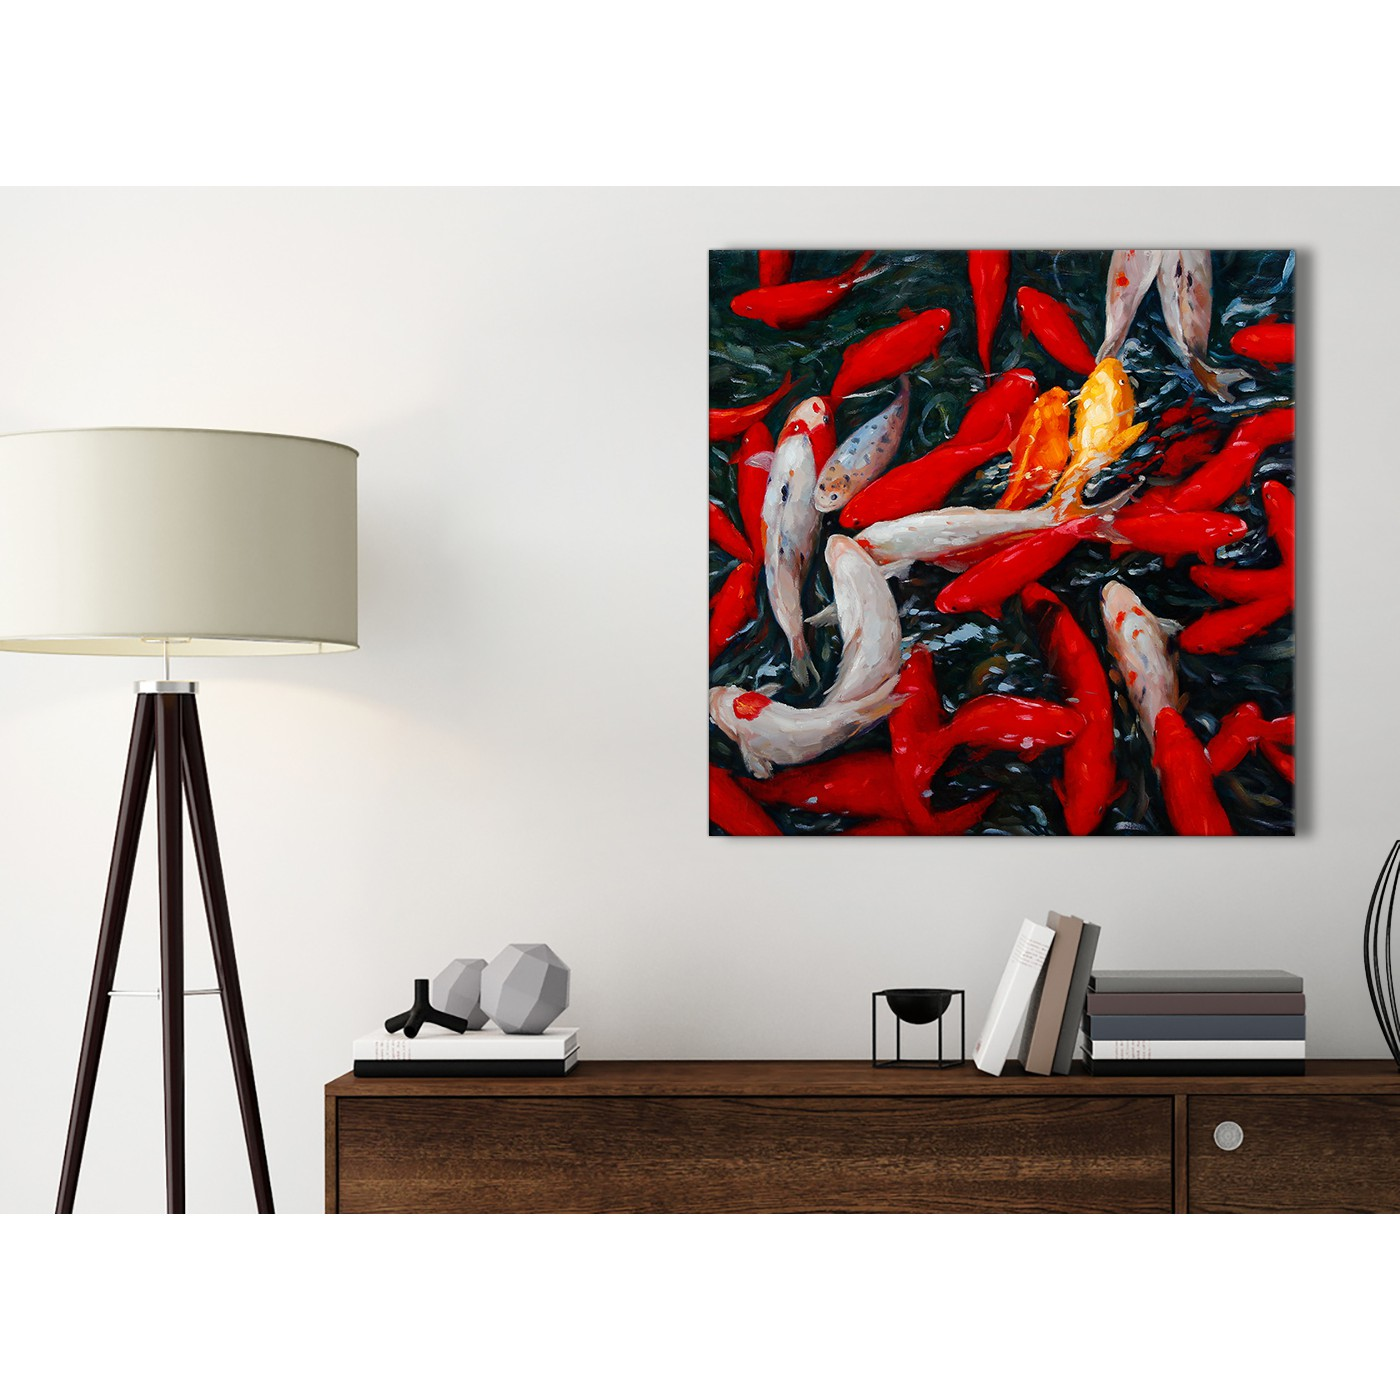 Canvas Pictures Koi Carp Fish Painting 1s439s Red Orange